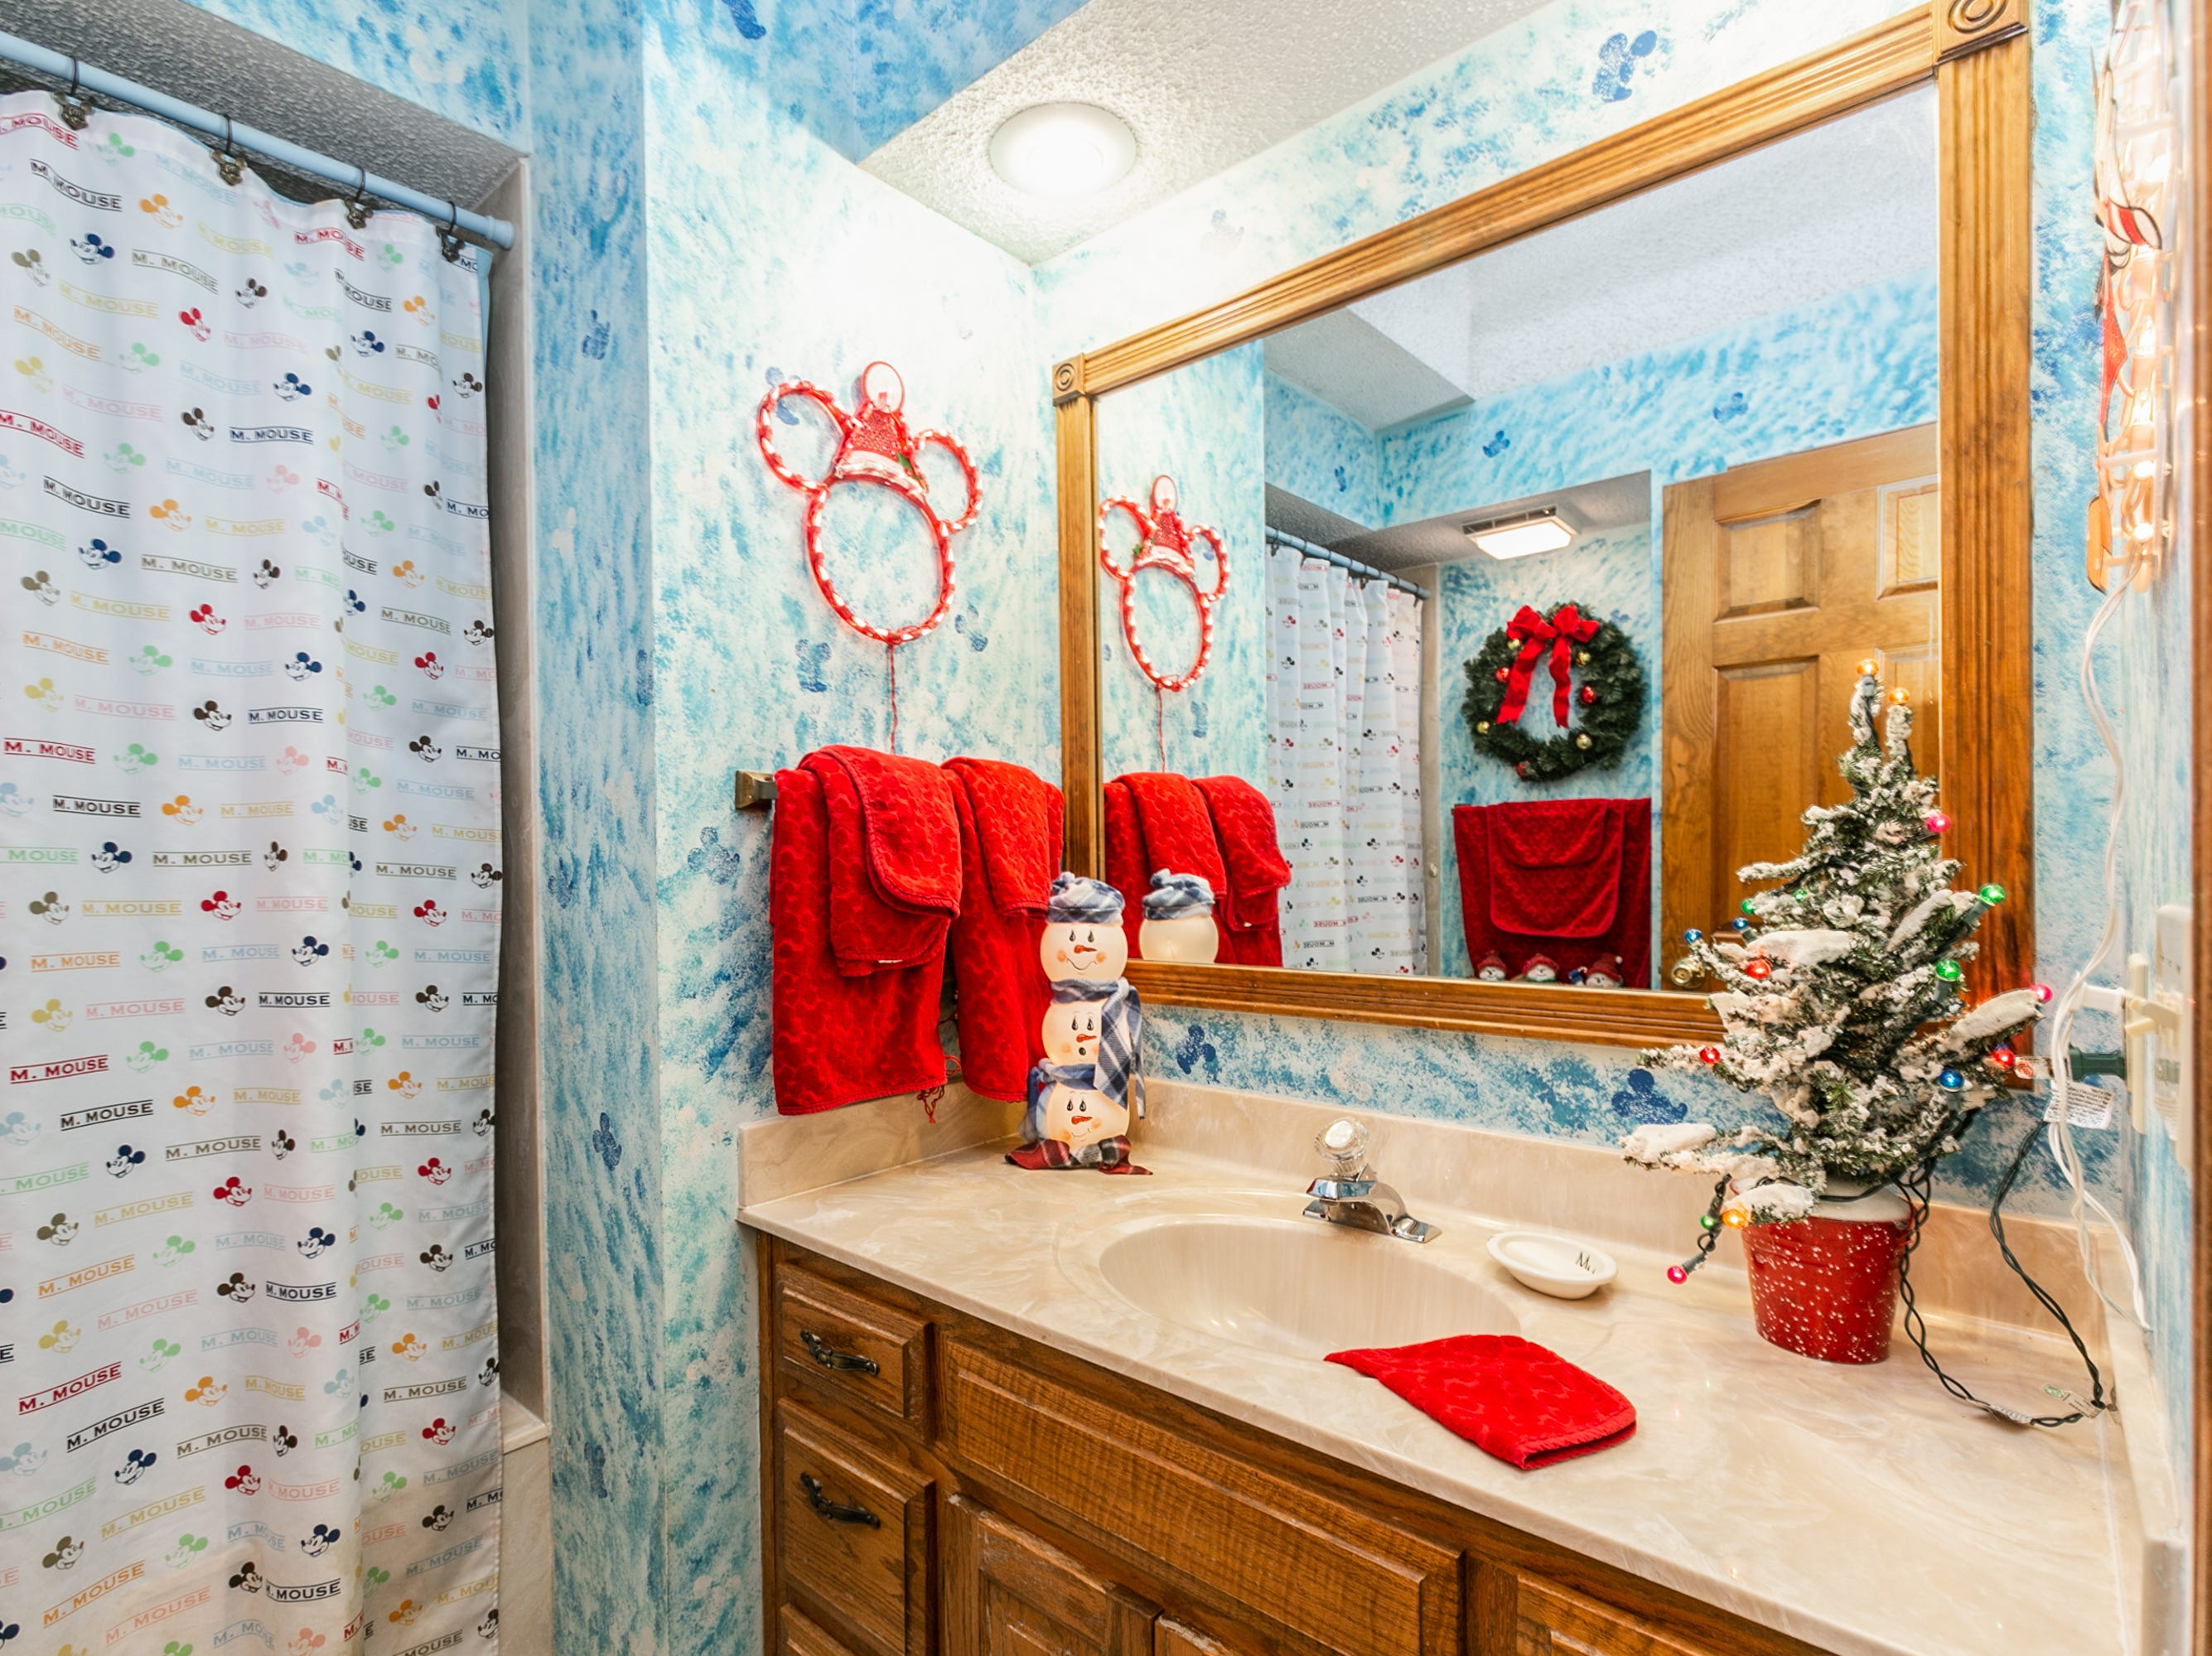 No room escapes holiday décor. The guest bath carries a subtle Mickey theme all year round in its paint job.